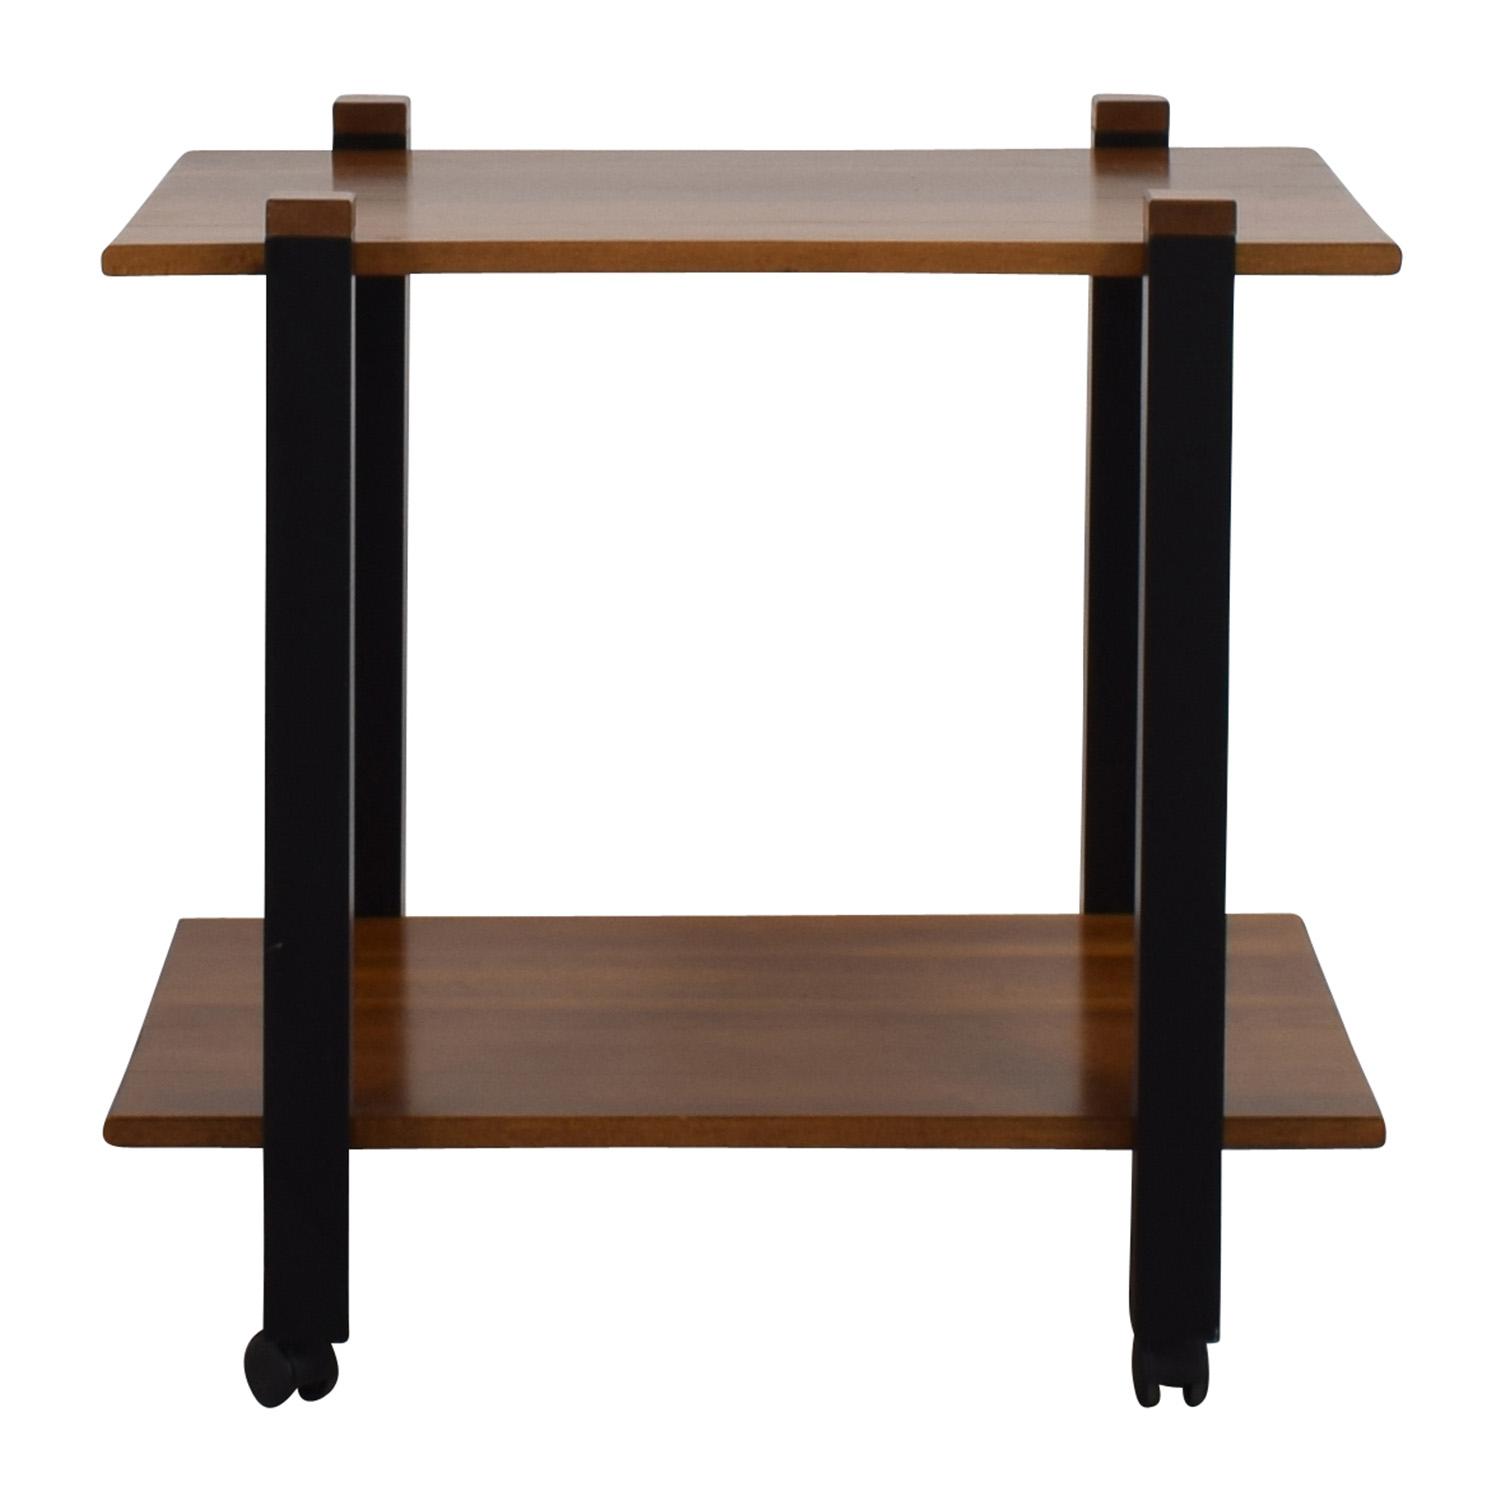 shop Pottery Barn Rolling Stand Pottery Barn Storage